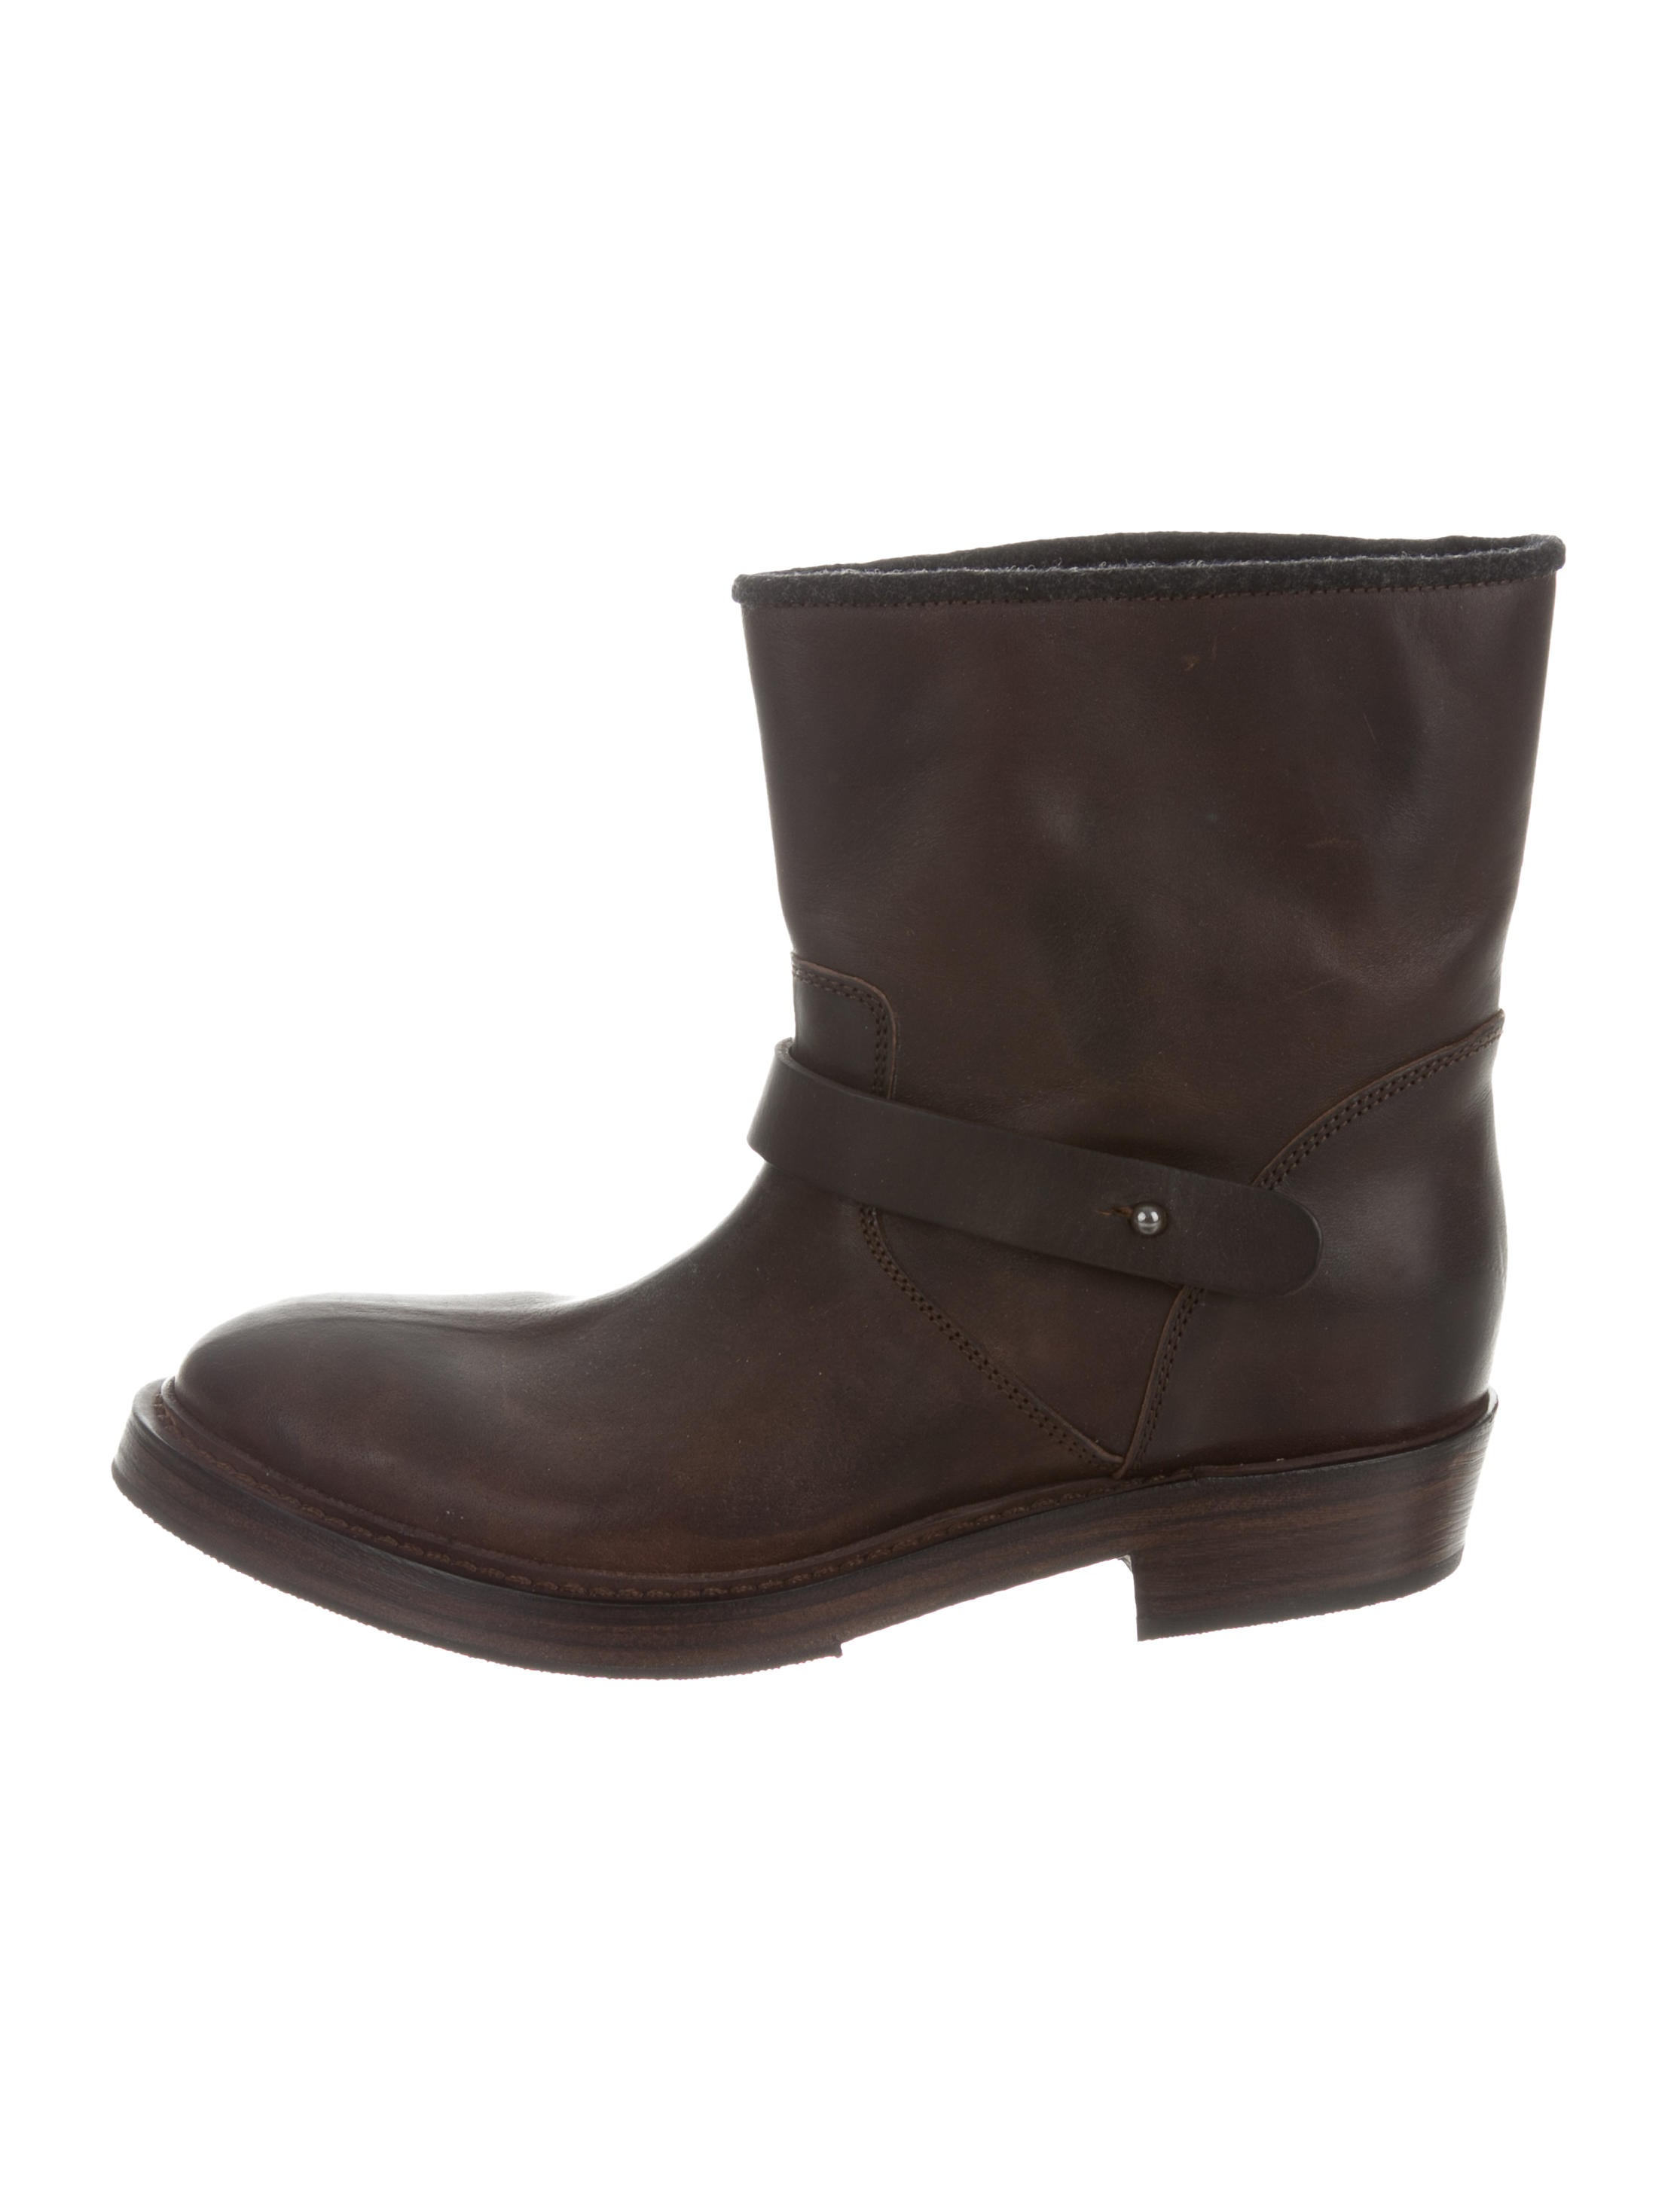 cheap buy authentic Brunello Cucinelli Moto Ankle Boots w/ Tags wiki sale online clearance discount free shipping pay with paypal mX39g2n5S